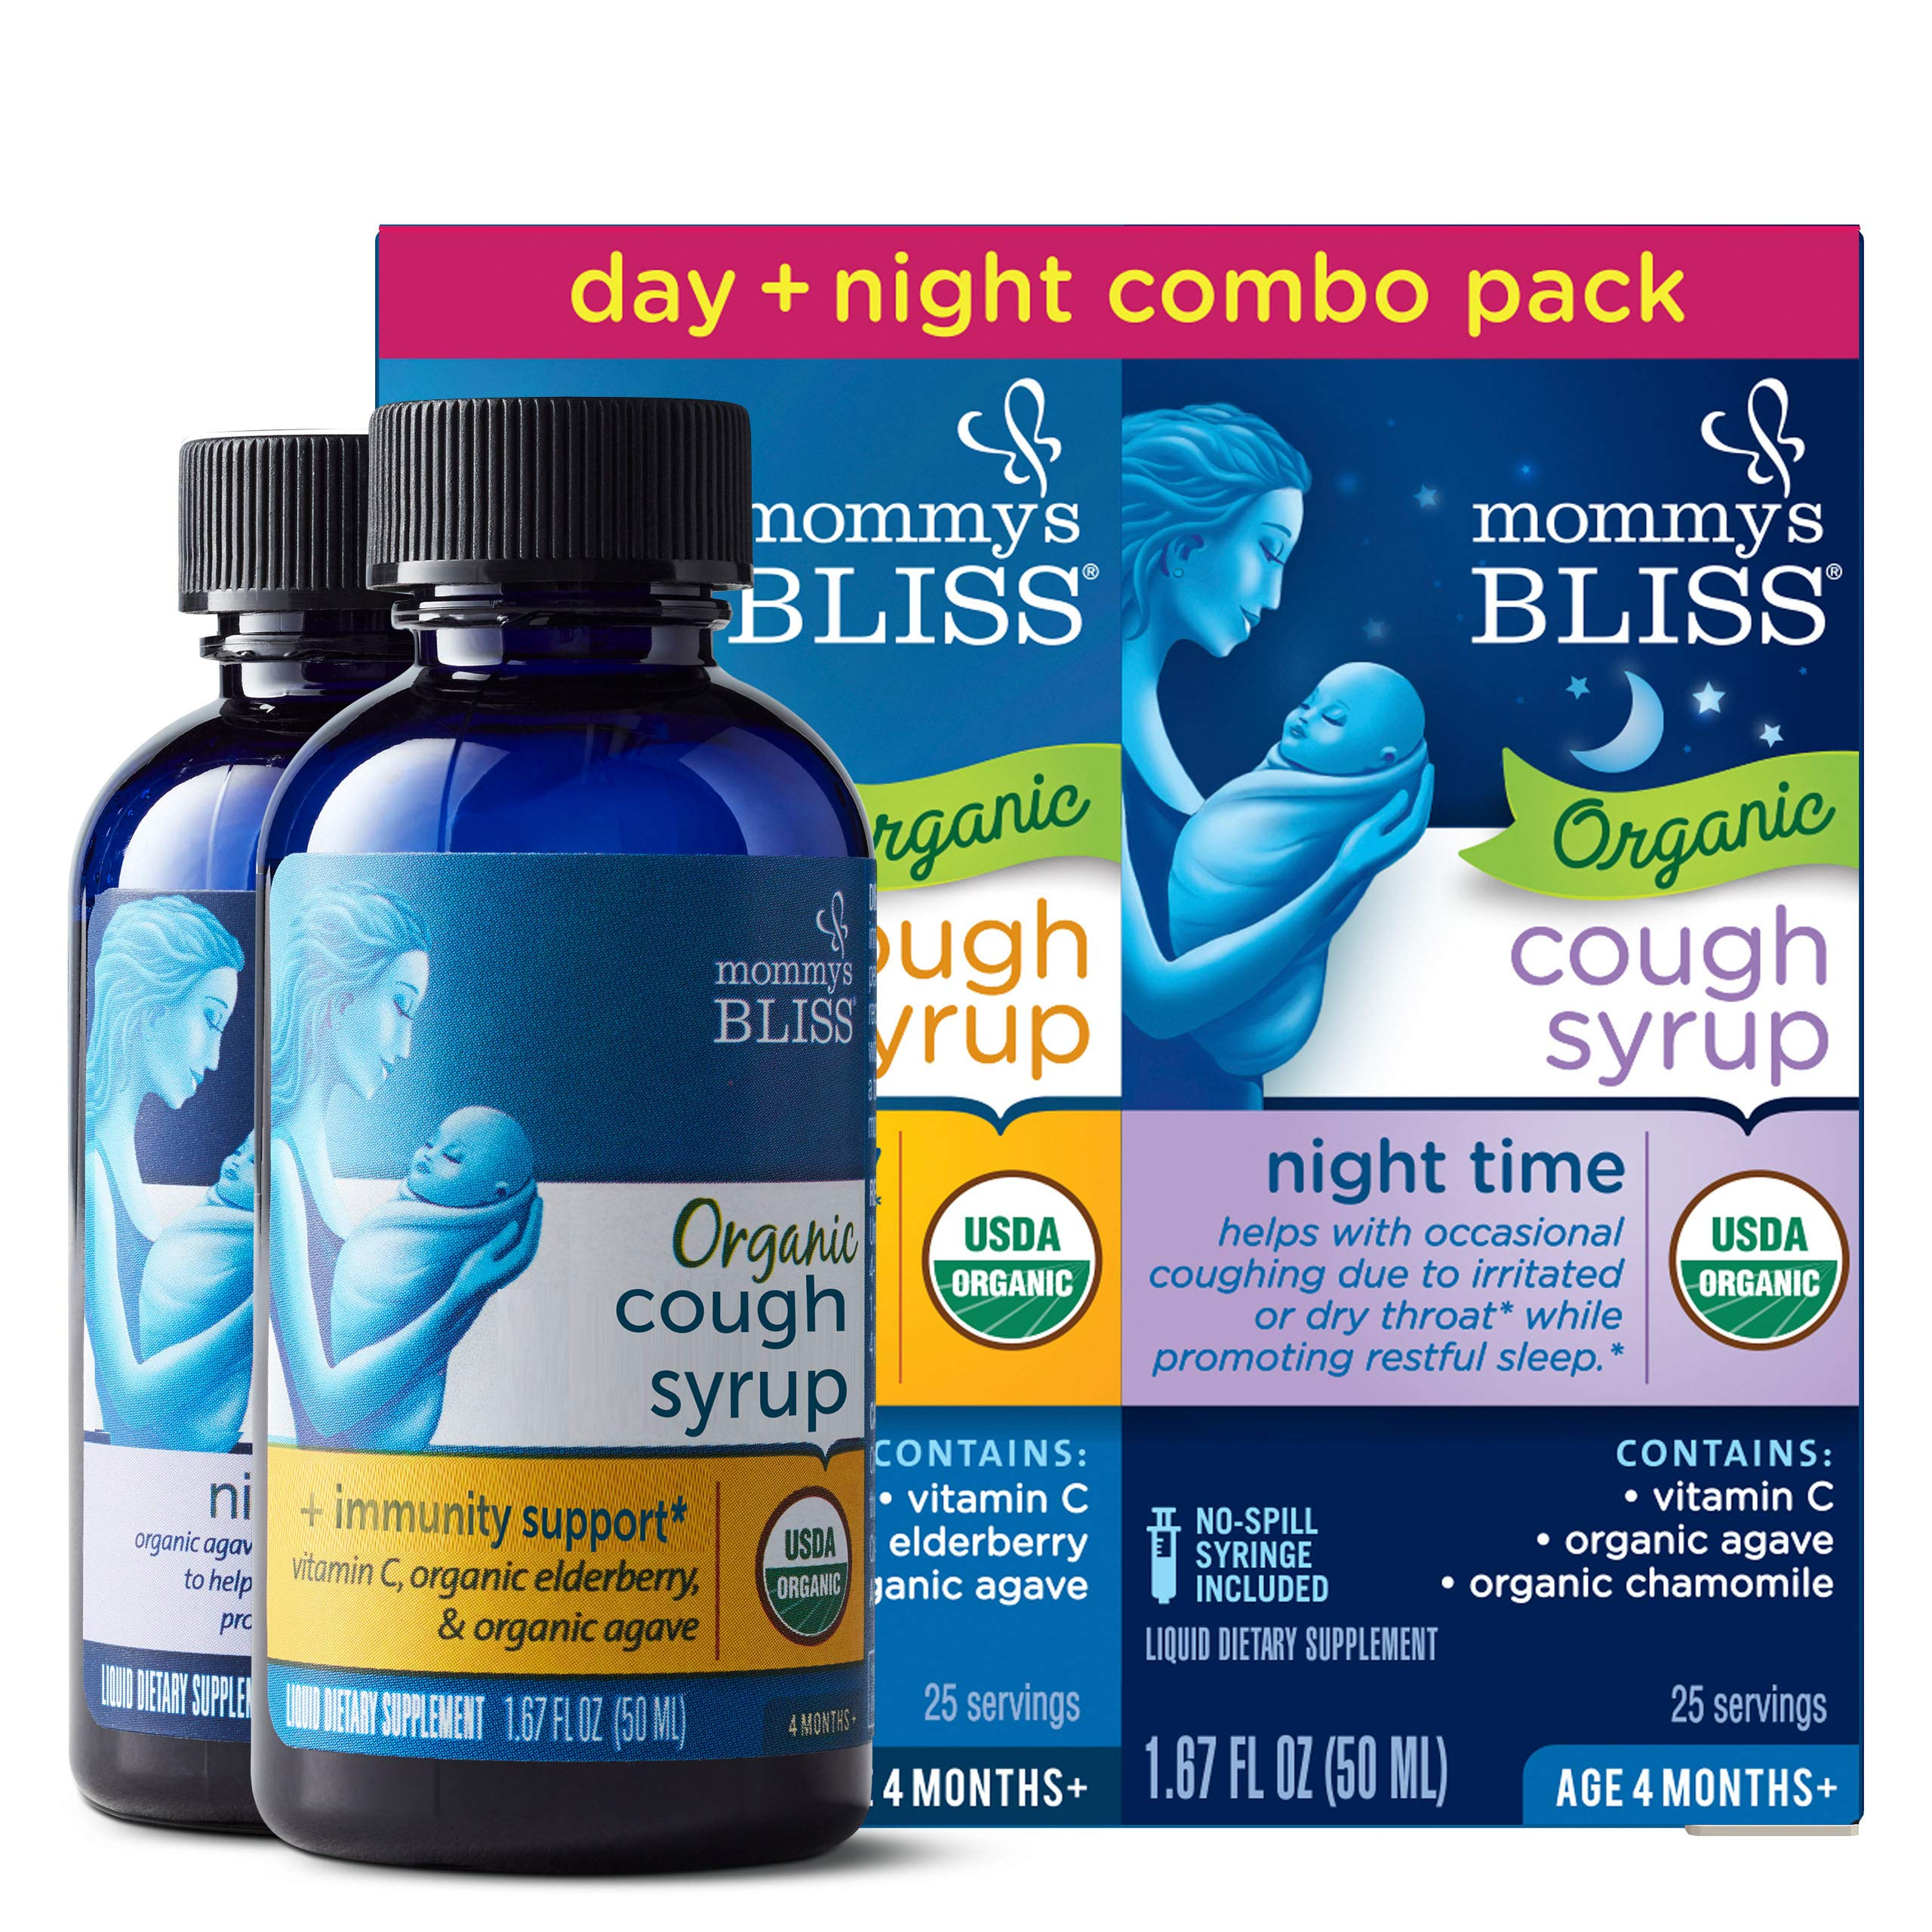 Mommy's Bliss Baby Organic Cough Syrup + Immune Support Day & Night Combo Pack 4 Months+ 3.34 Fluid Ounce by Mommy's Bliss